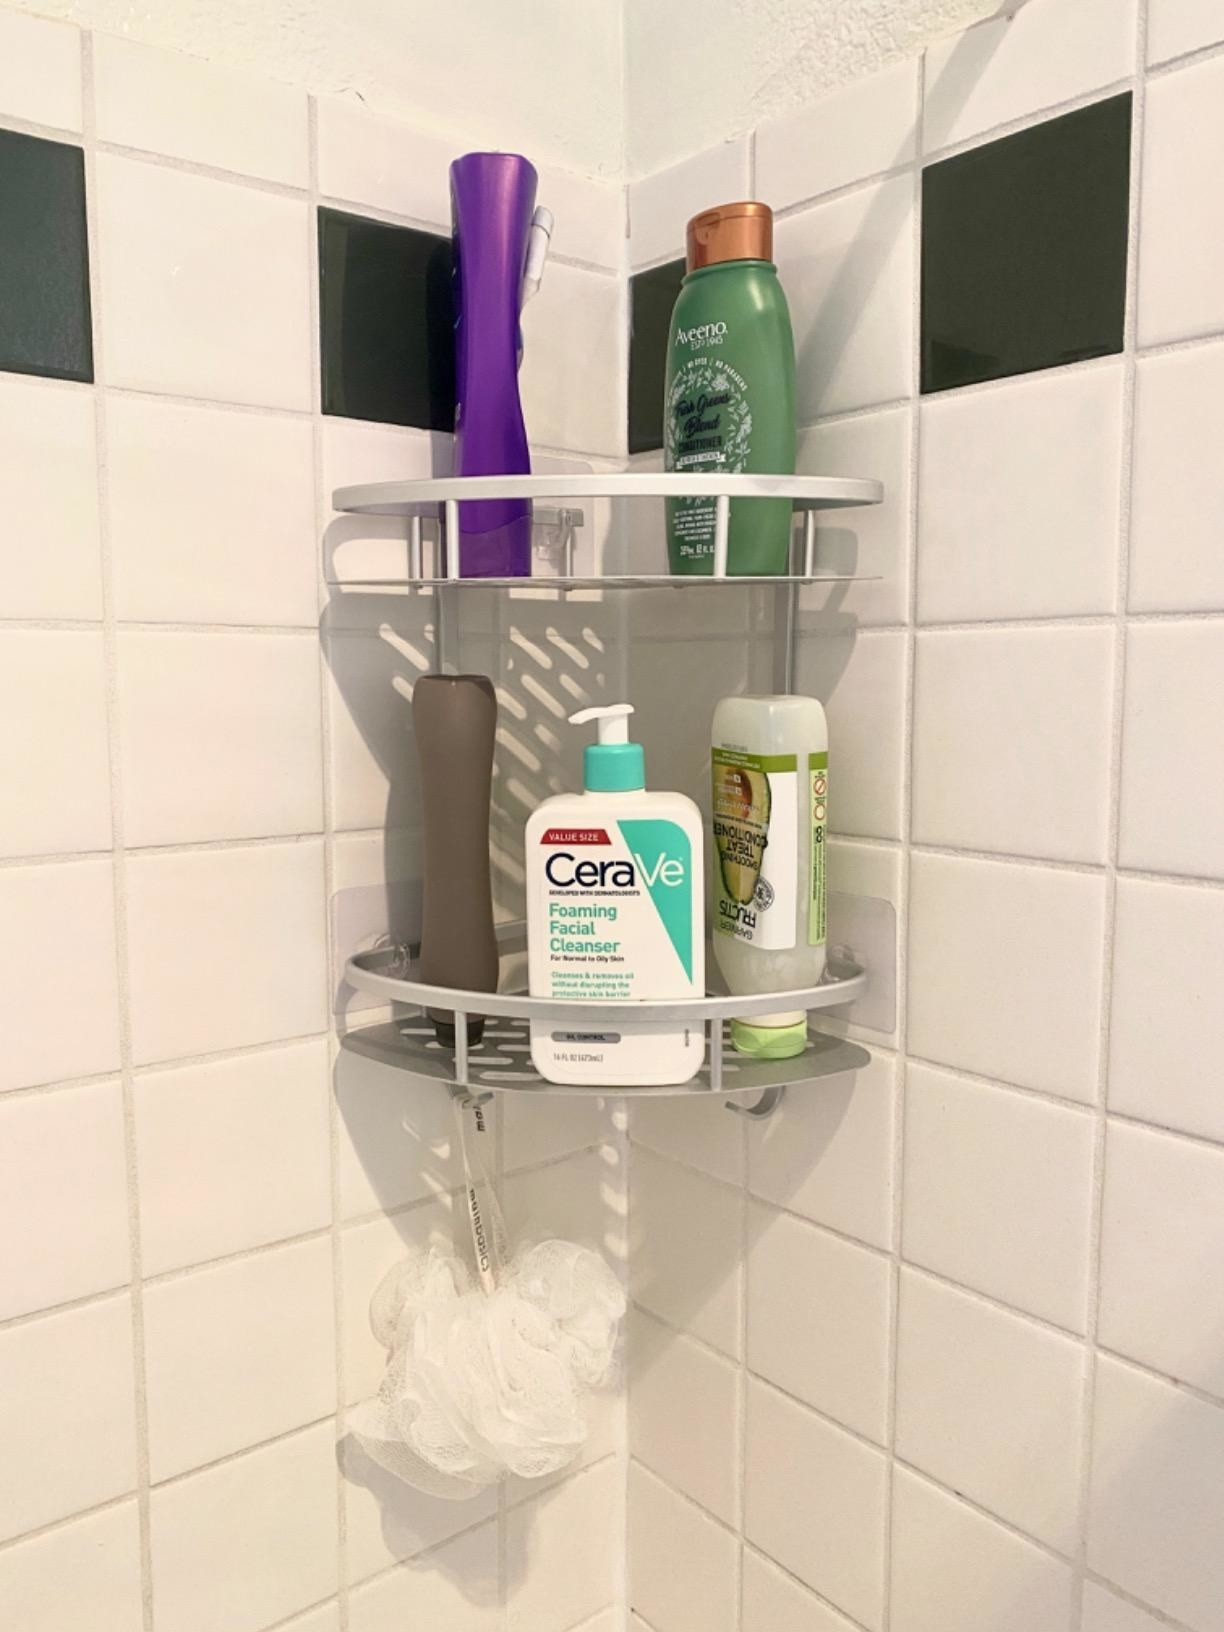 Reviewer photo of the shelf holding toiletries and a loofah